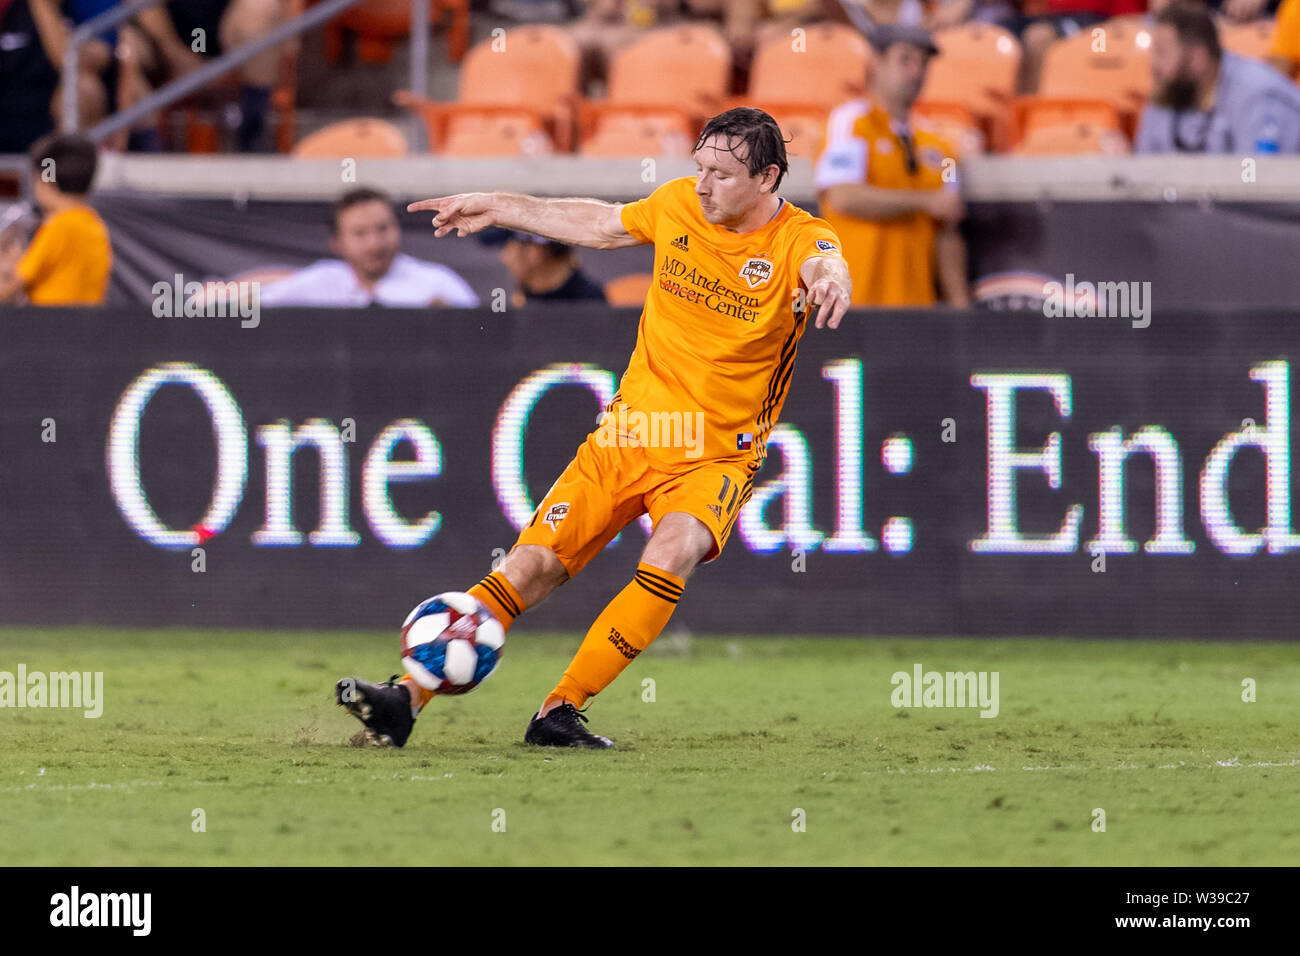 Houston, Texas, USA. 12th July, 2019. Houston Dynamo midfielder Thomas McNamara (11) during a match between Los Angeles FC and Houston Dynamo at BBVA Stadium in Houston, Texas. The final LAFC wins 3-1. Maria Lysaker/CSM/Alamy Live News - Stock Image